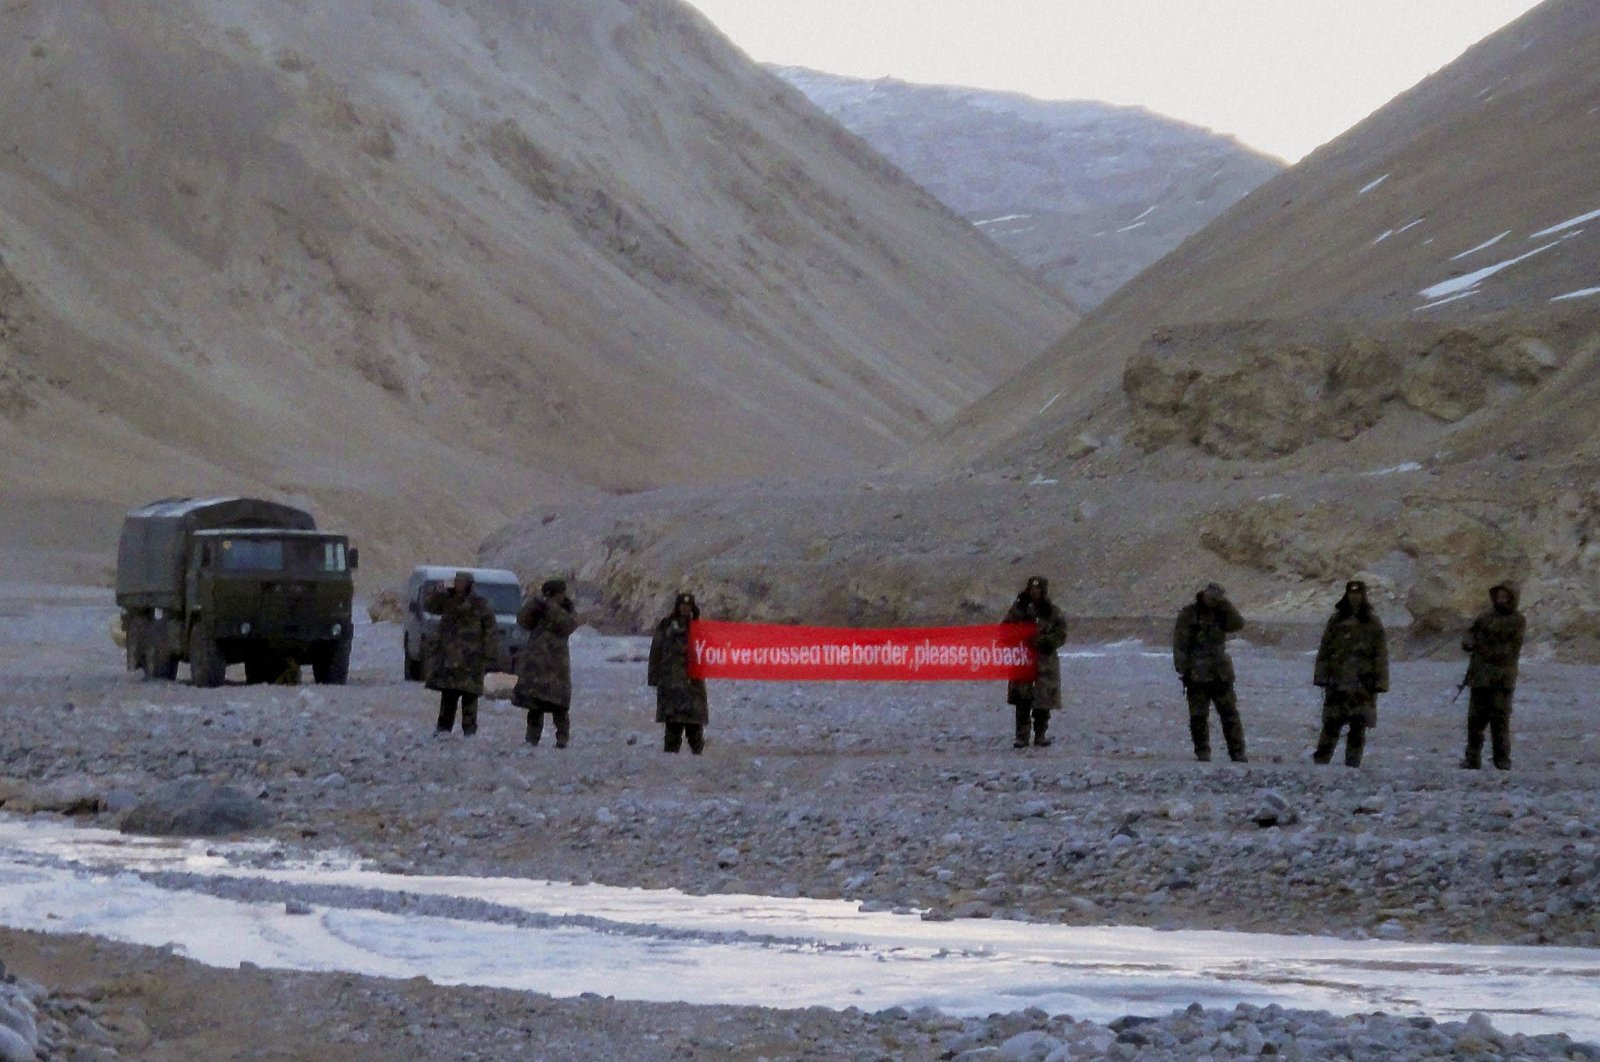 "In this file photo, Chinese troops hold a banner that reads: ""You've crossed the border, please go back"" in Ladakh, India, May 5, 2013. (AP Photo)"